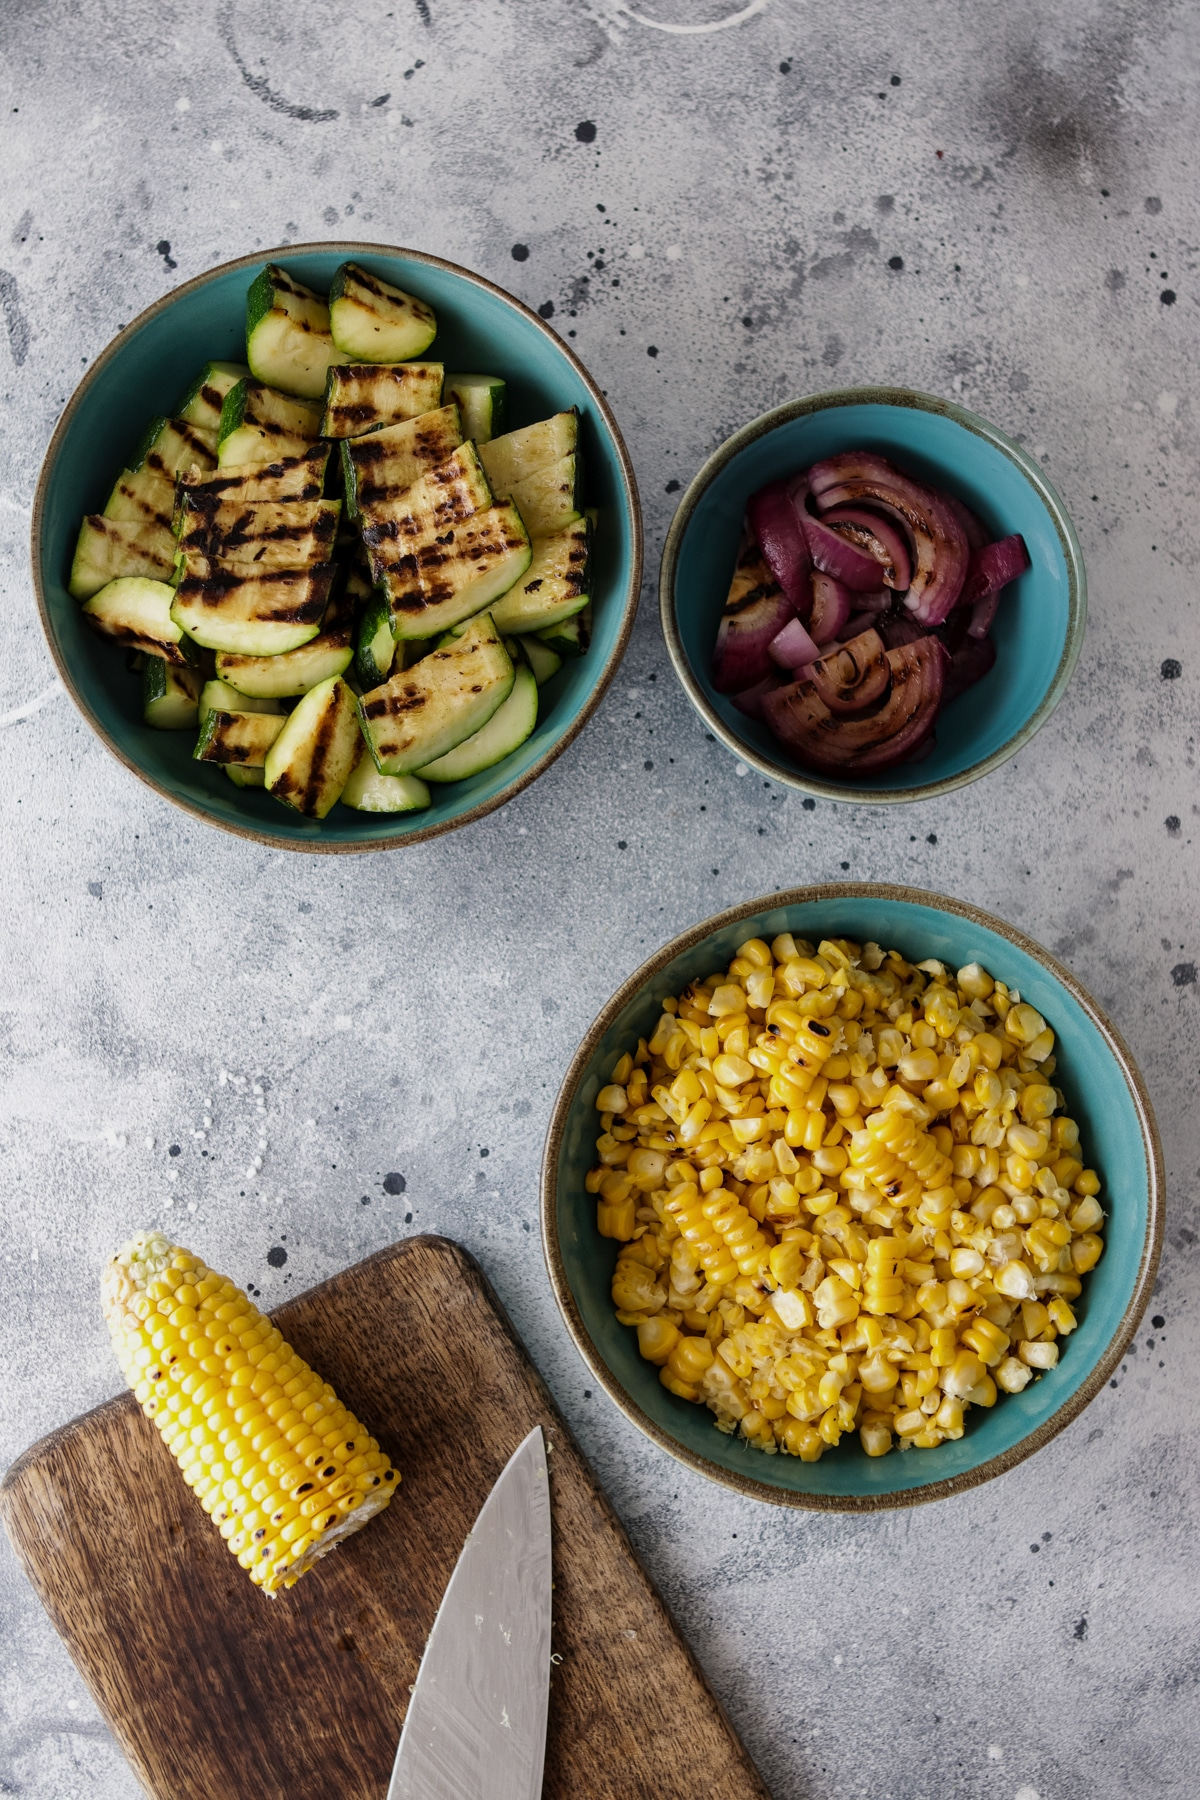 Chopped Zucchini Grilled-Corn-and-Onion-in-Separate-Bowls